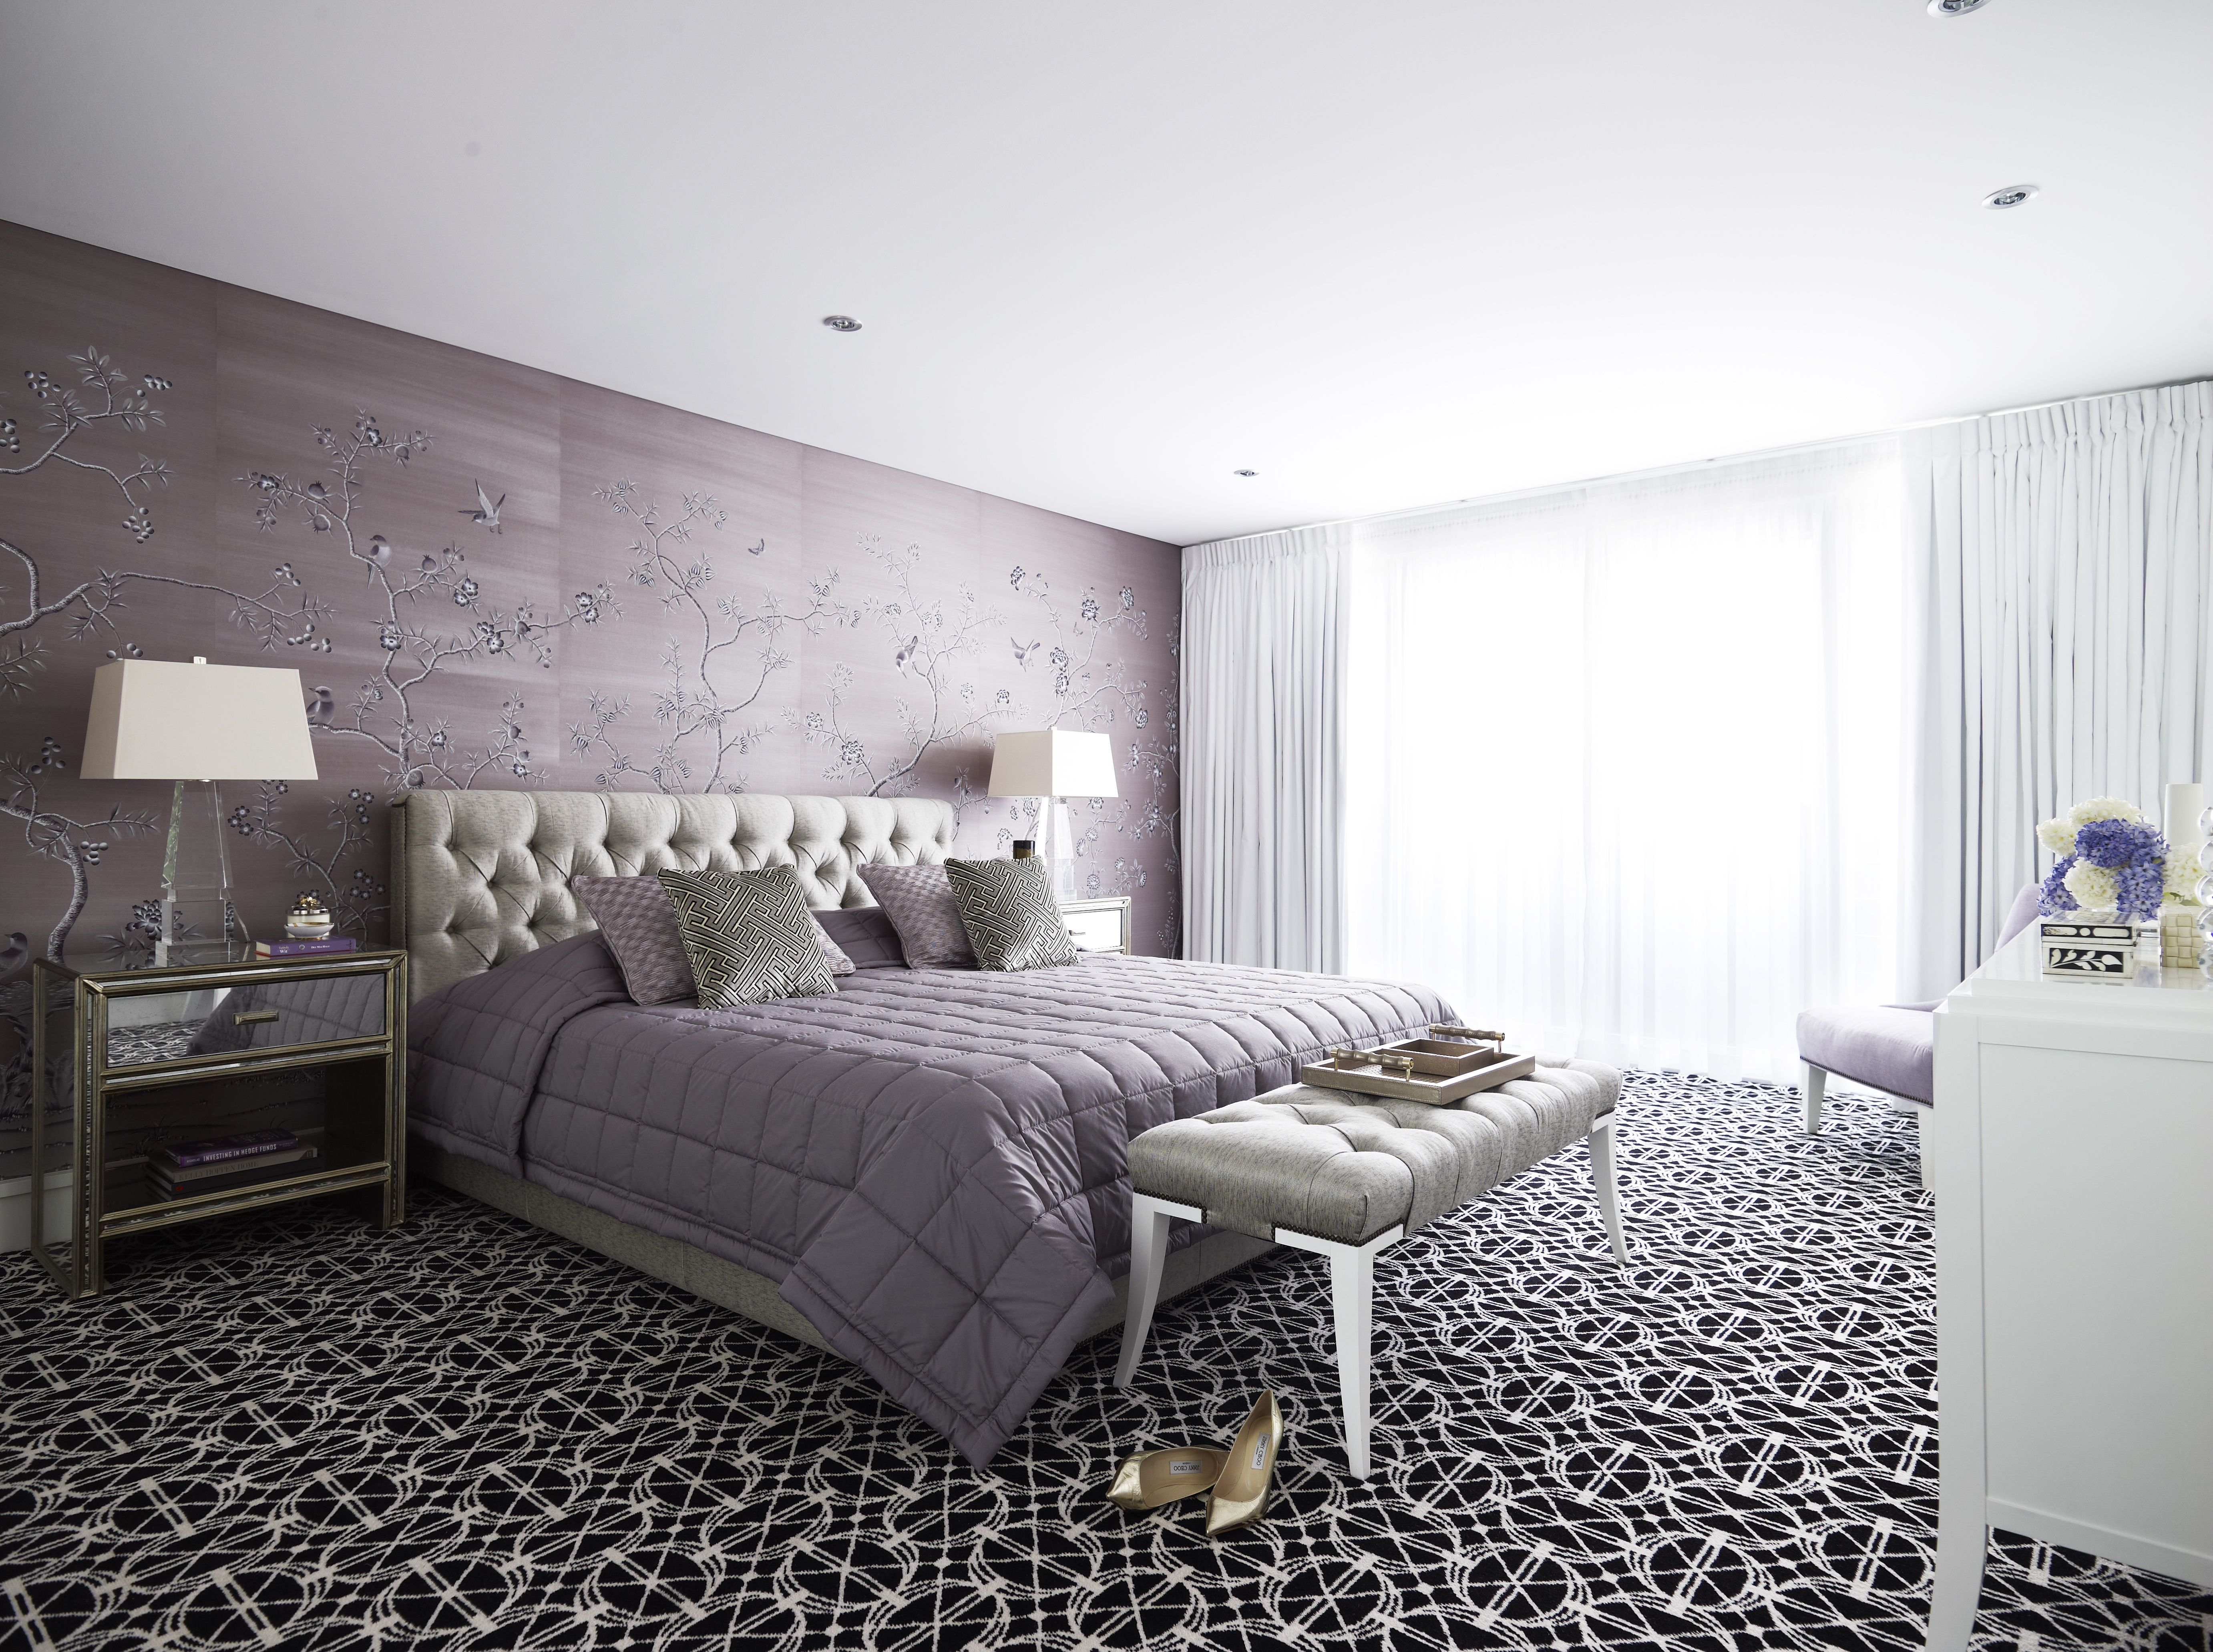 Bedroom Design By Greg Natale Bedspread Bedhead And Cushions By - B q bedroom designs